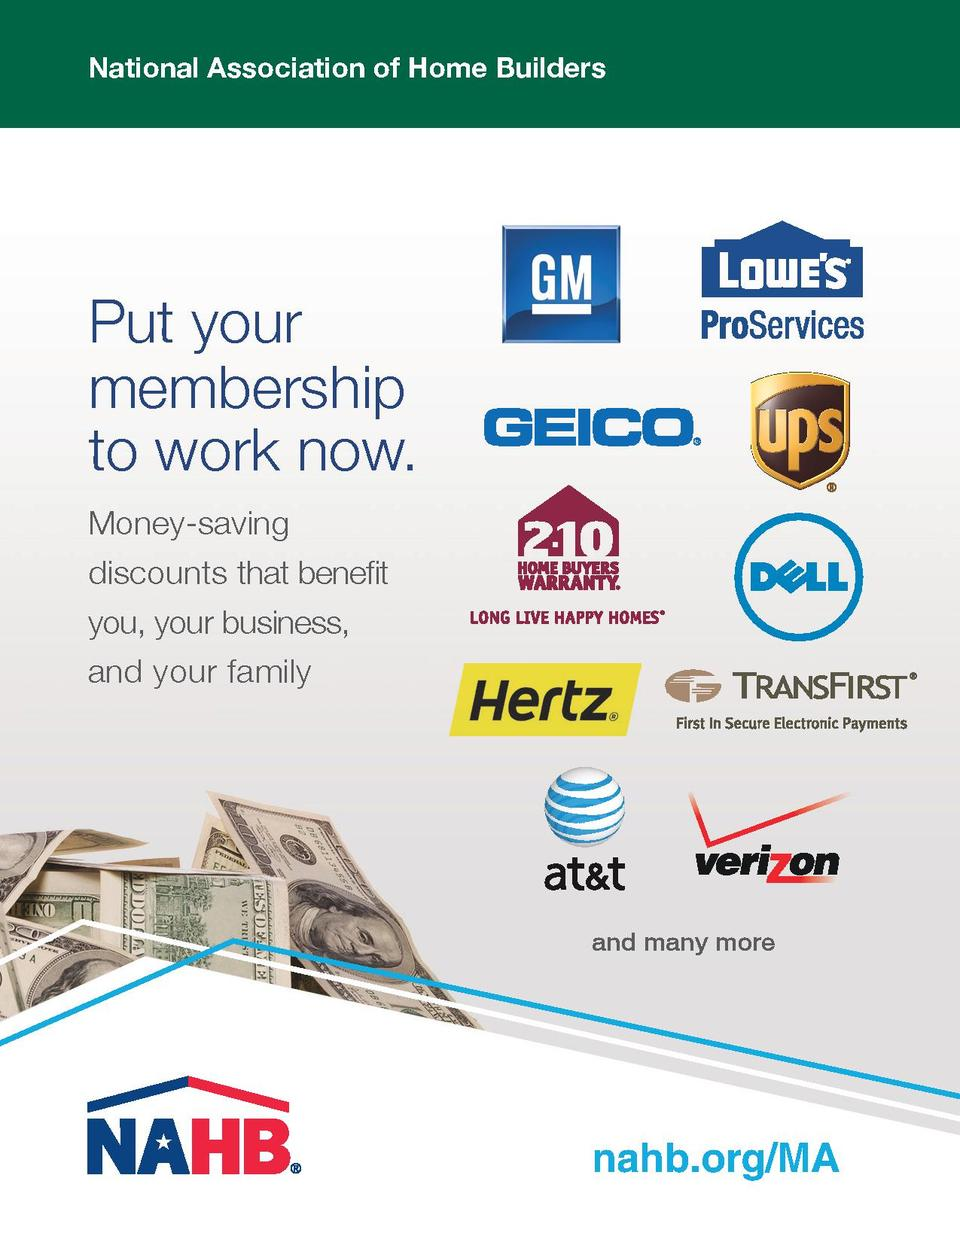 National Association of Home Builders  Put your membership to work now. Money-saving discounts that benefit you, your busi...